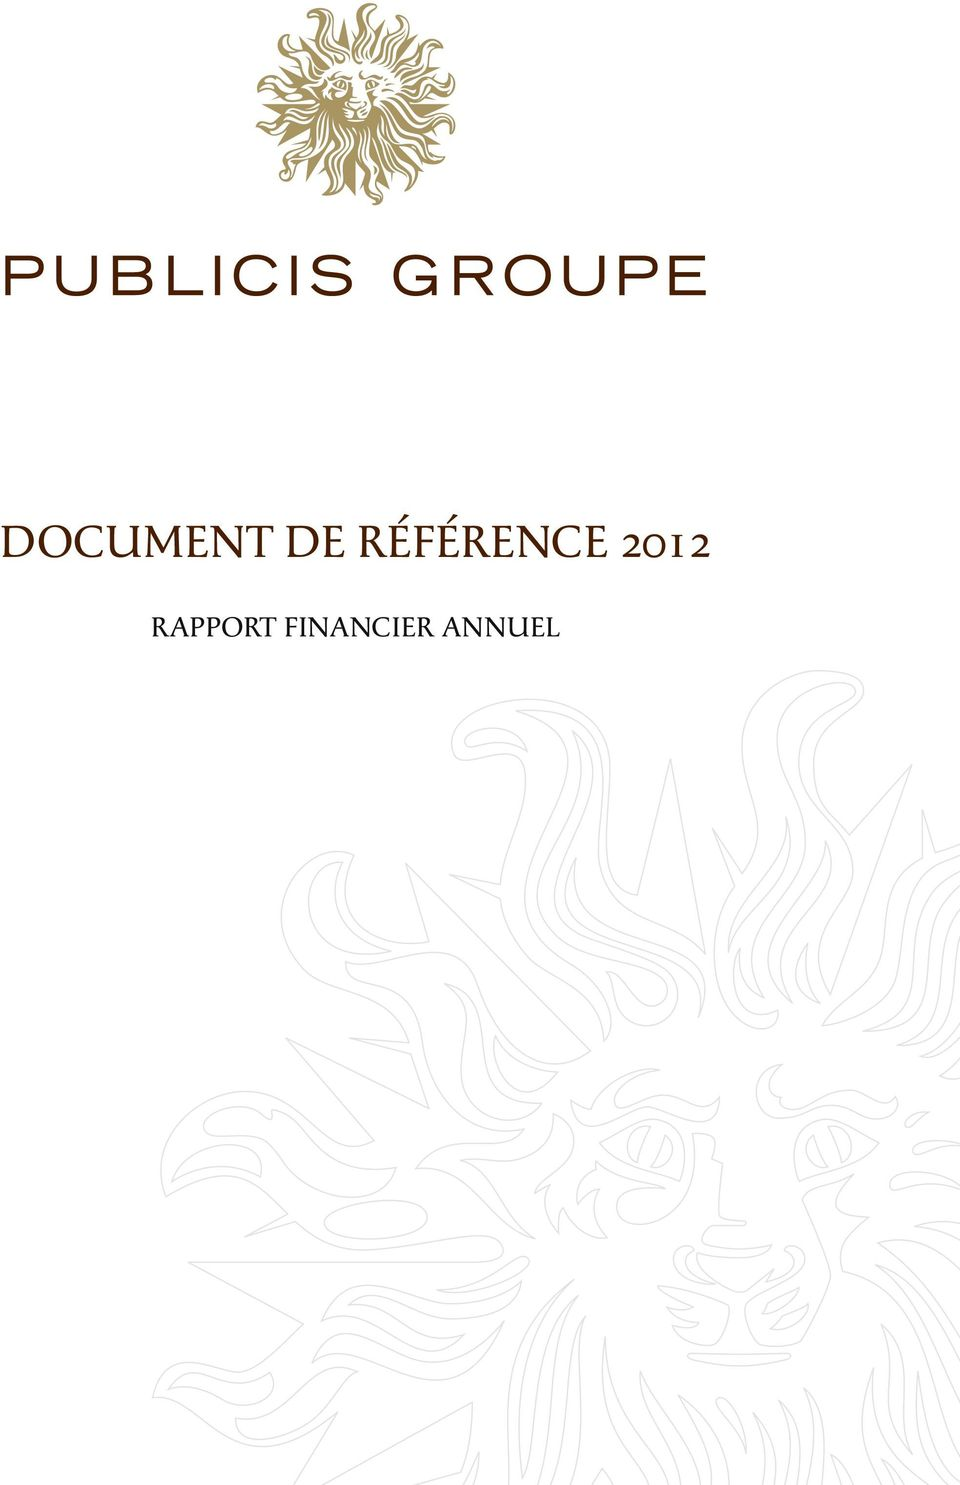 2012 RAPPORT